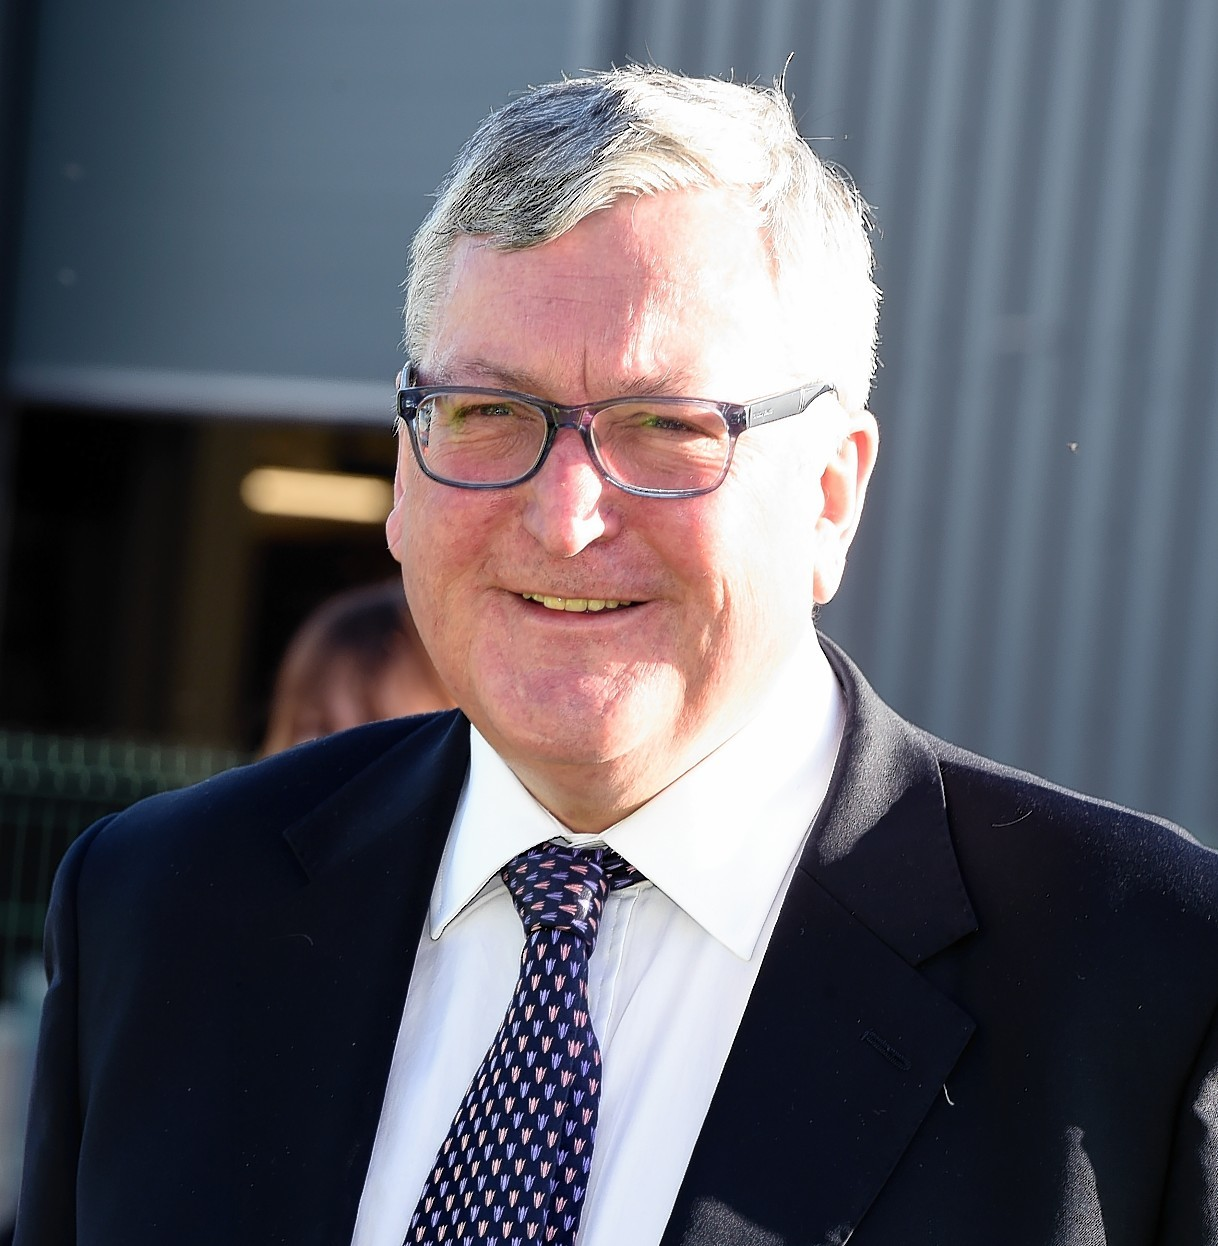 Energy Minister Fergus Ewing in Aberdeen on Monday, February 8, 2016,